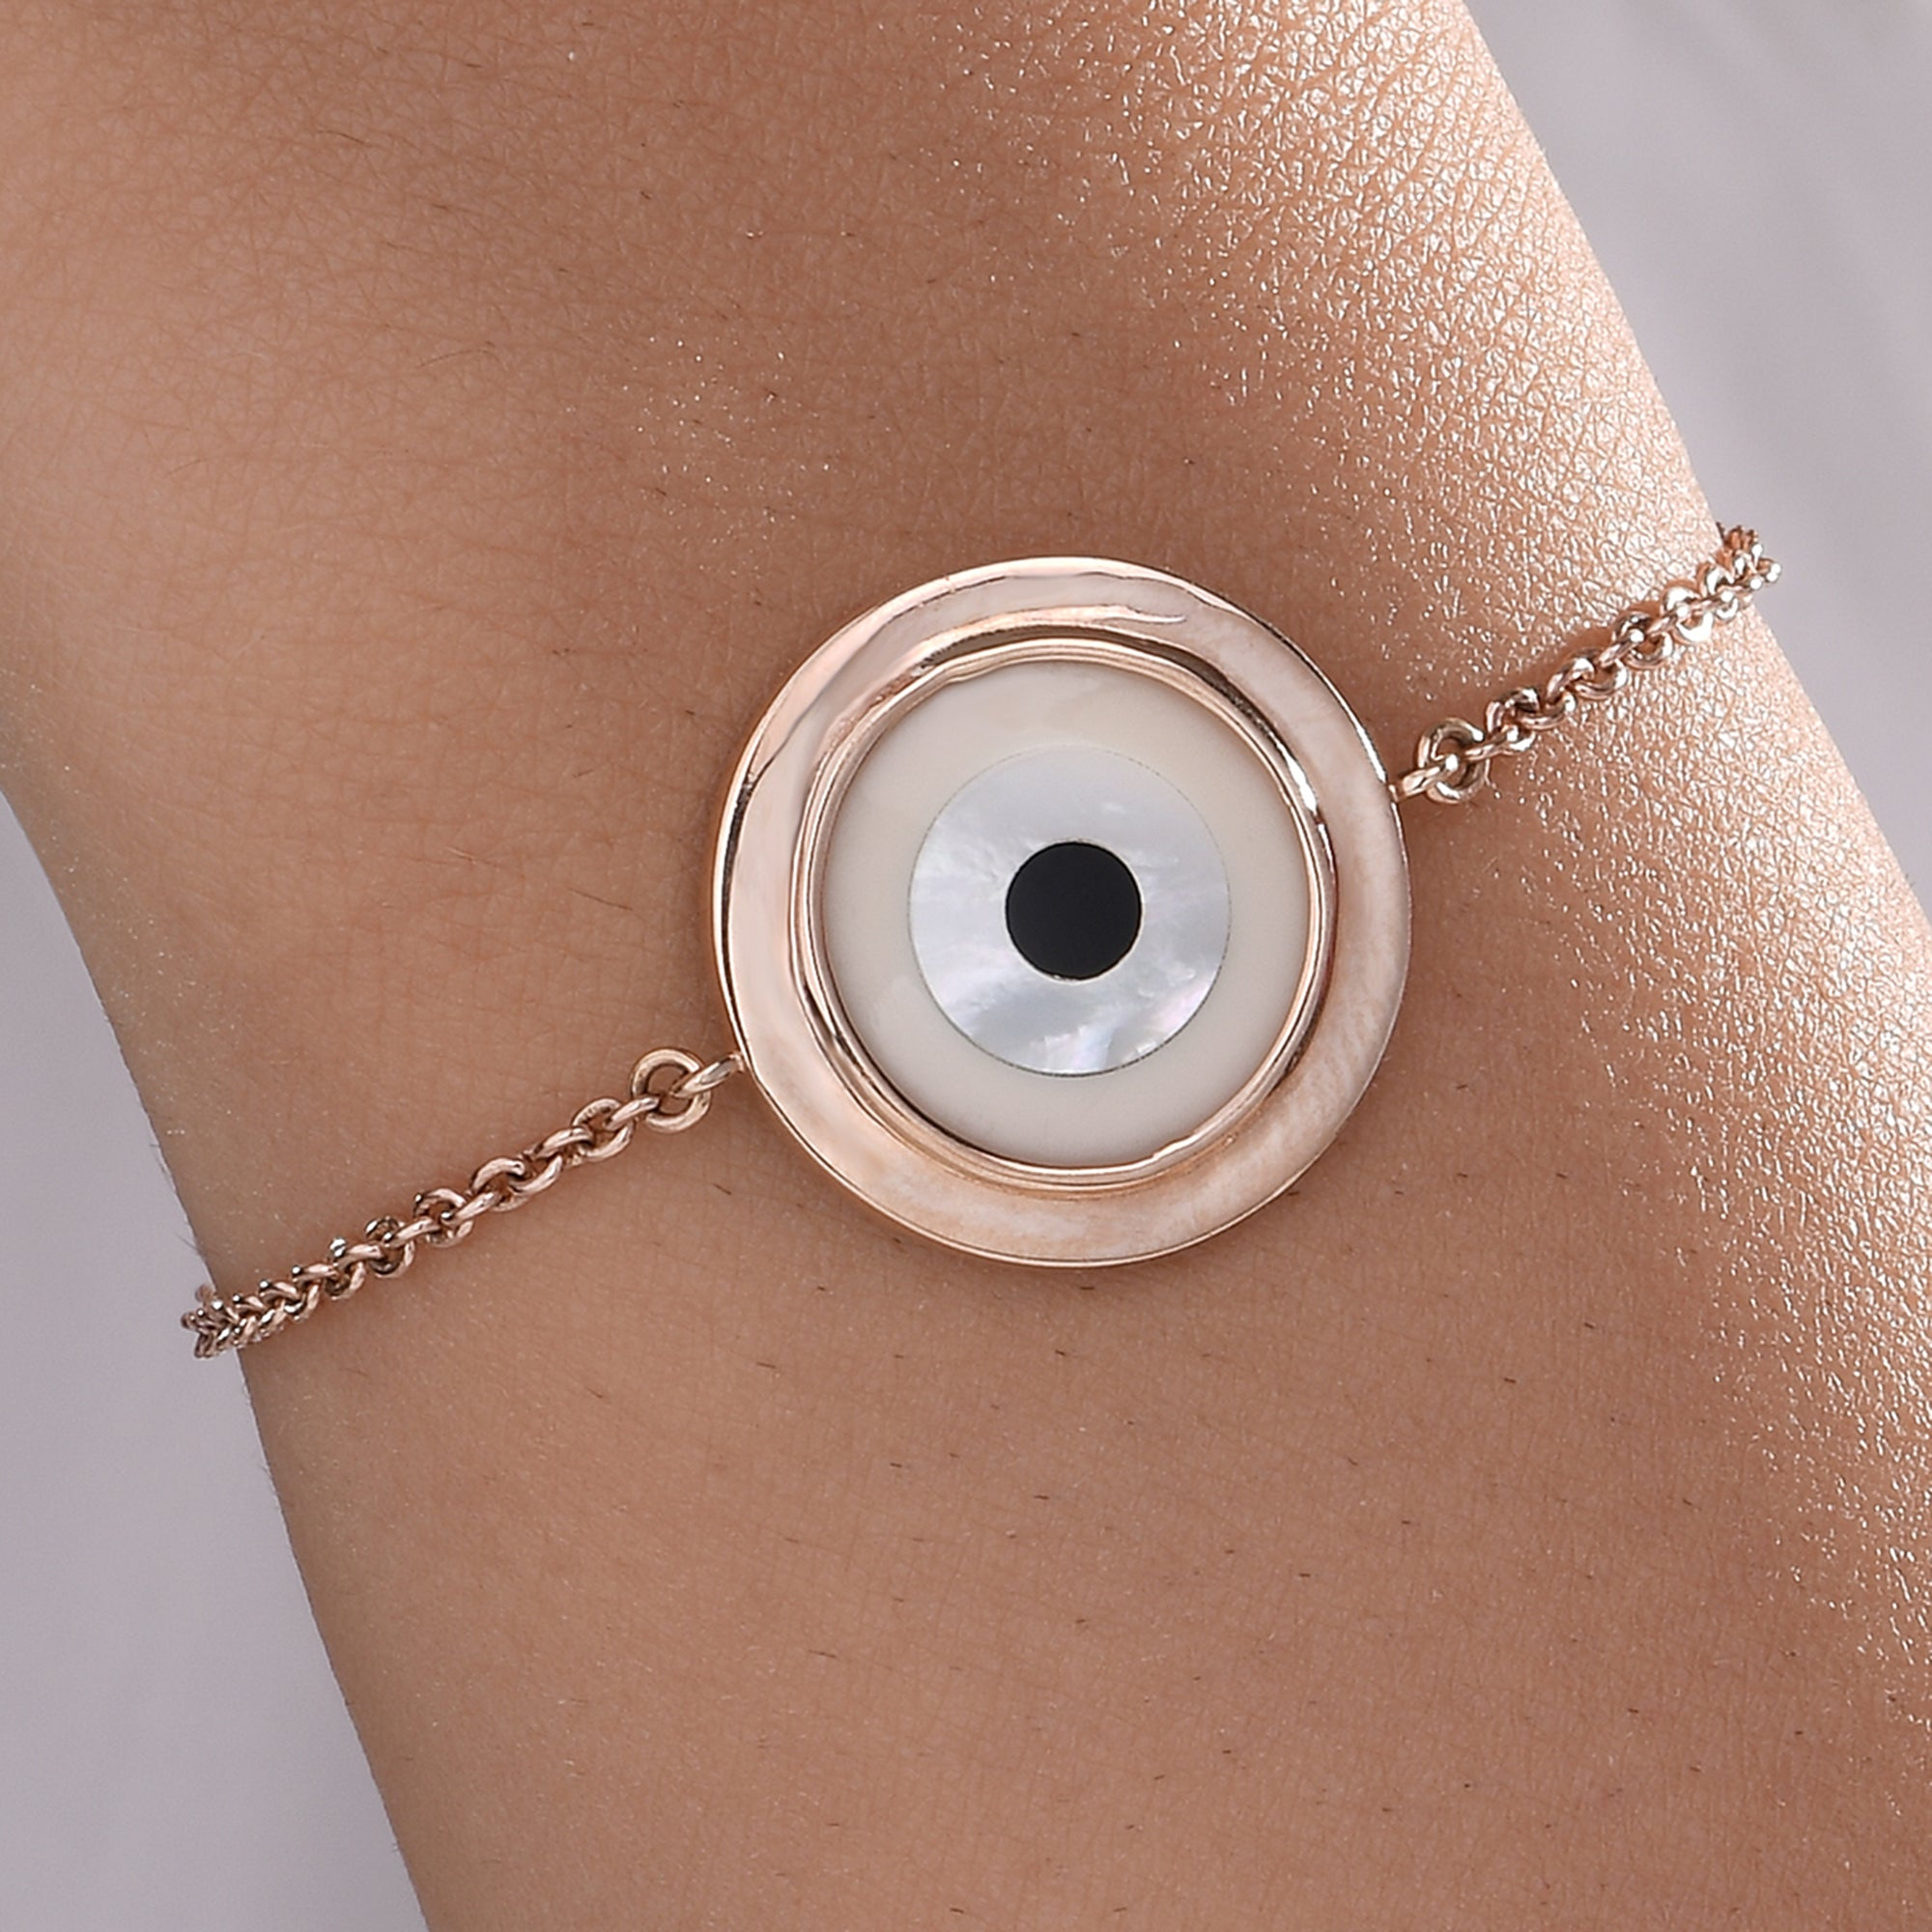 Large Round Off White Evil Eye Chain Bracelet